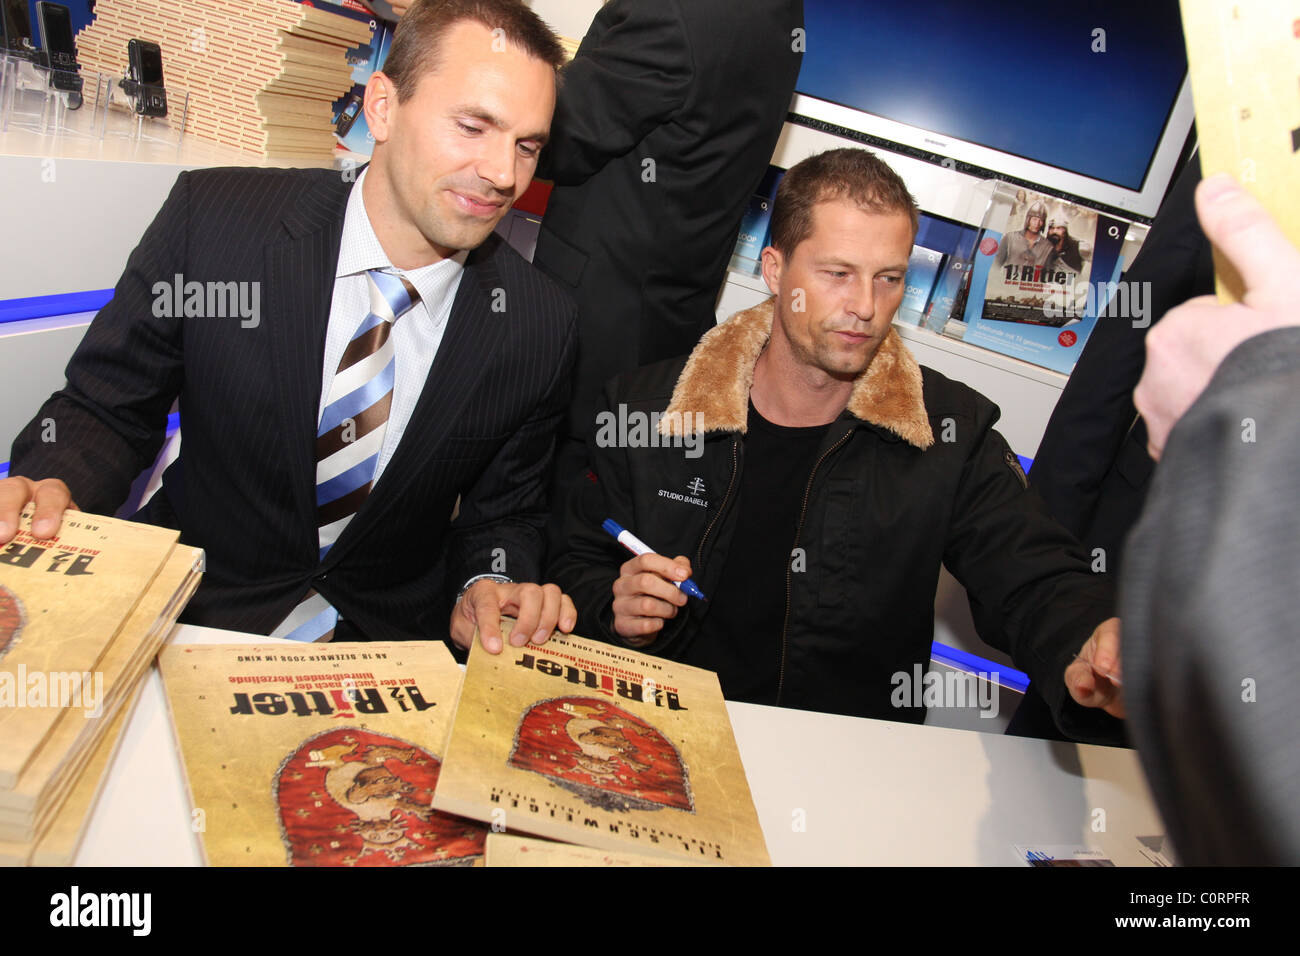 til schweiger signing autographs grand opening o2 flagship store at stock photo royalty free. Black Bedroom Furniture Sets. Home Design Ideas